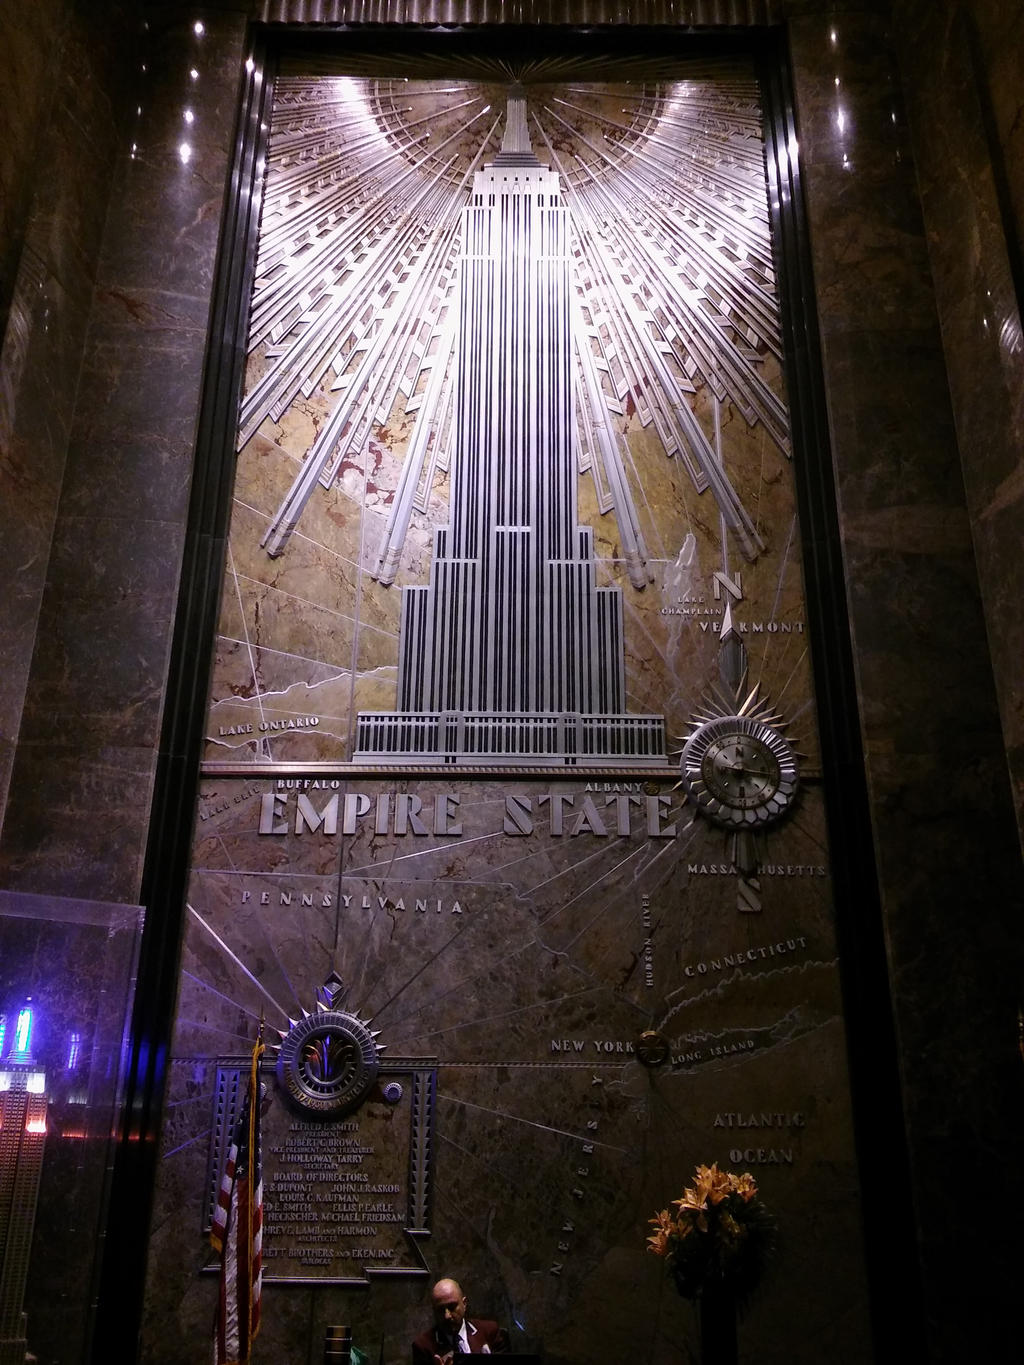 Empire state building lobby mural 3 by shadow dragon 777 for Empire state building mural